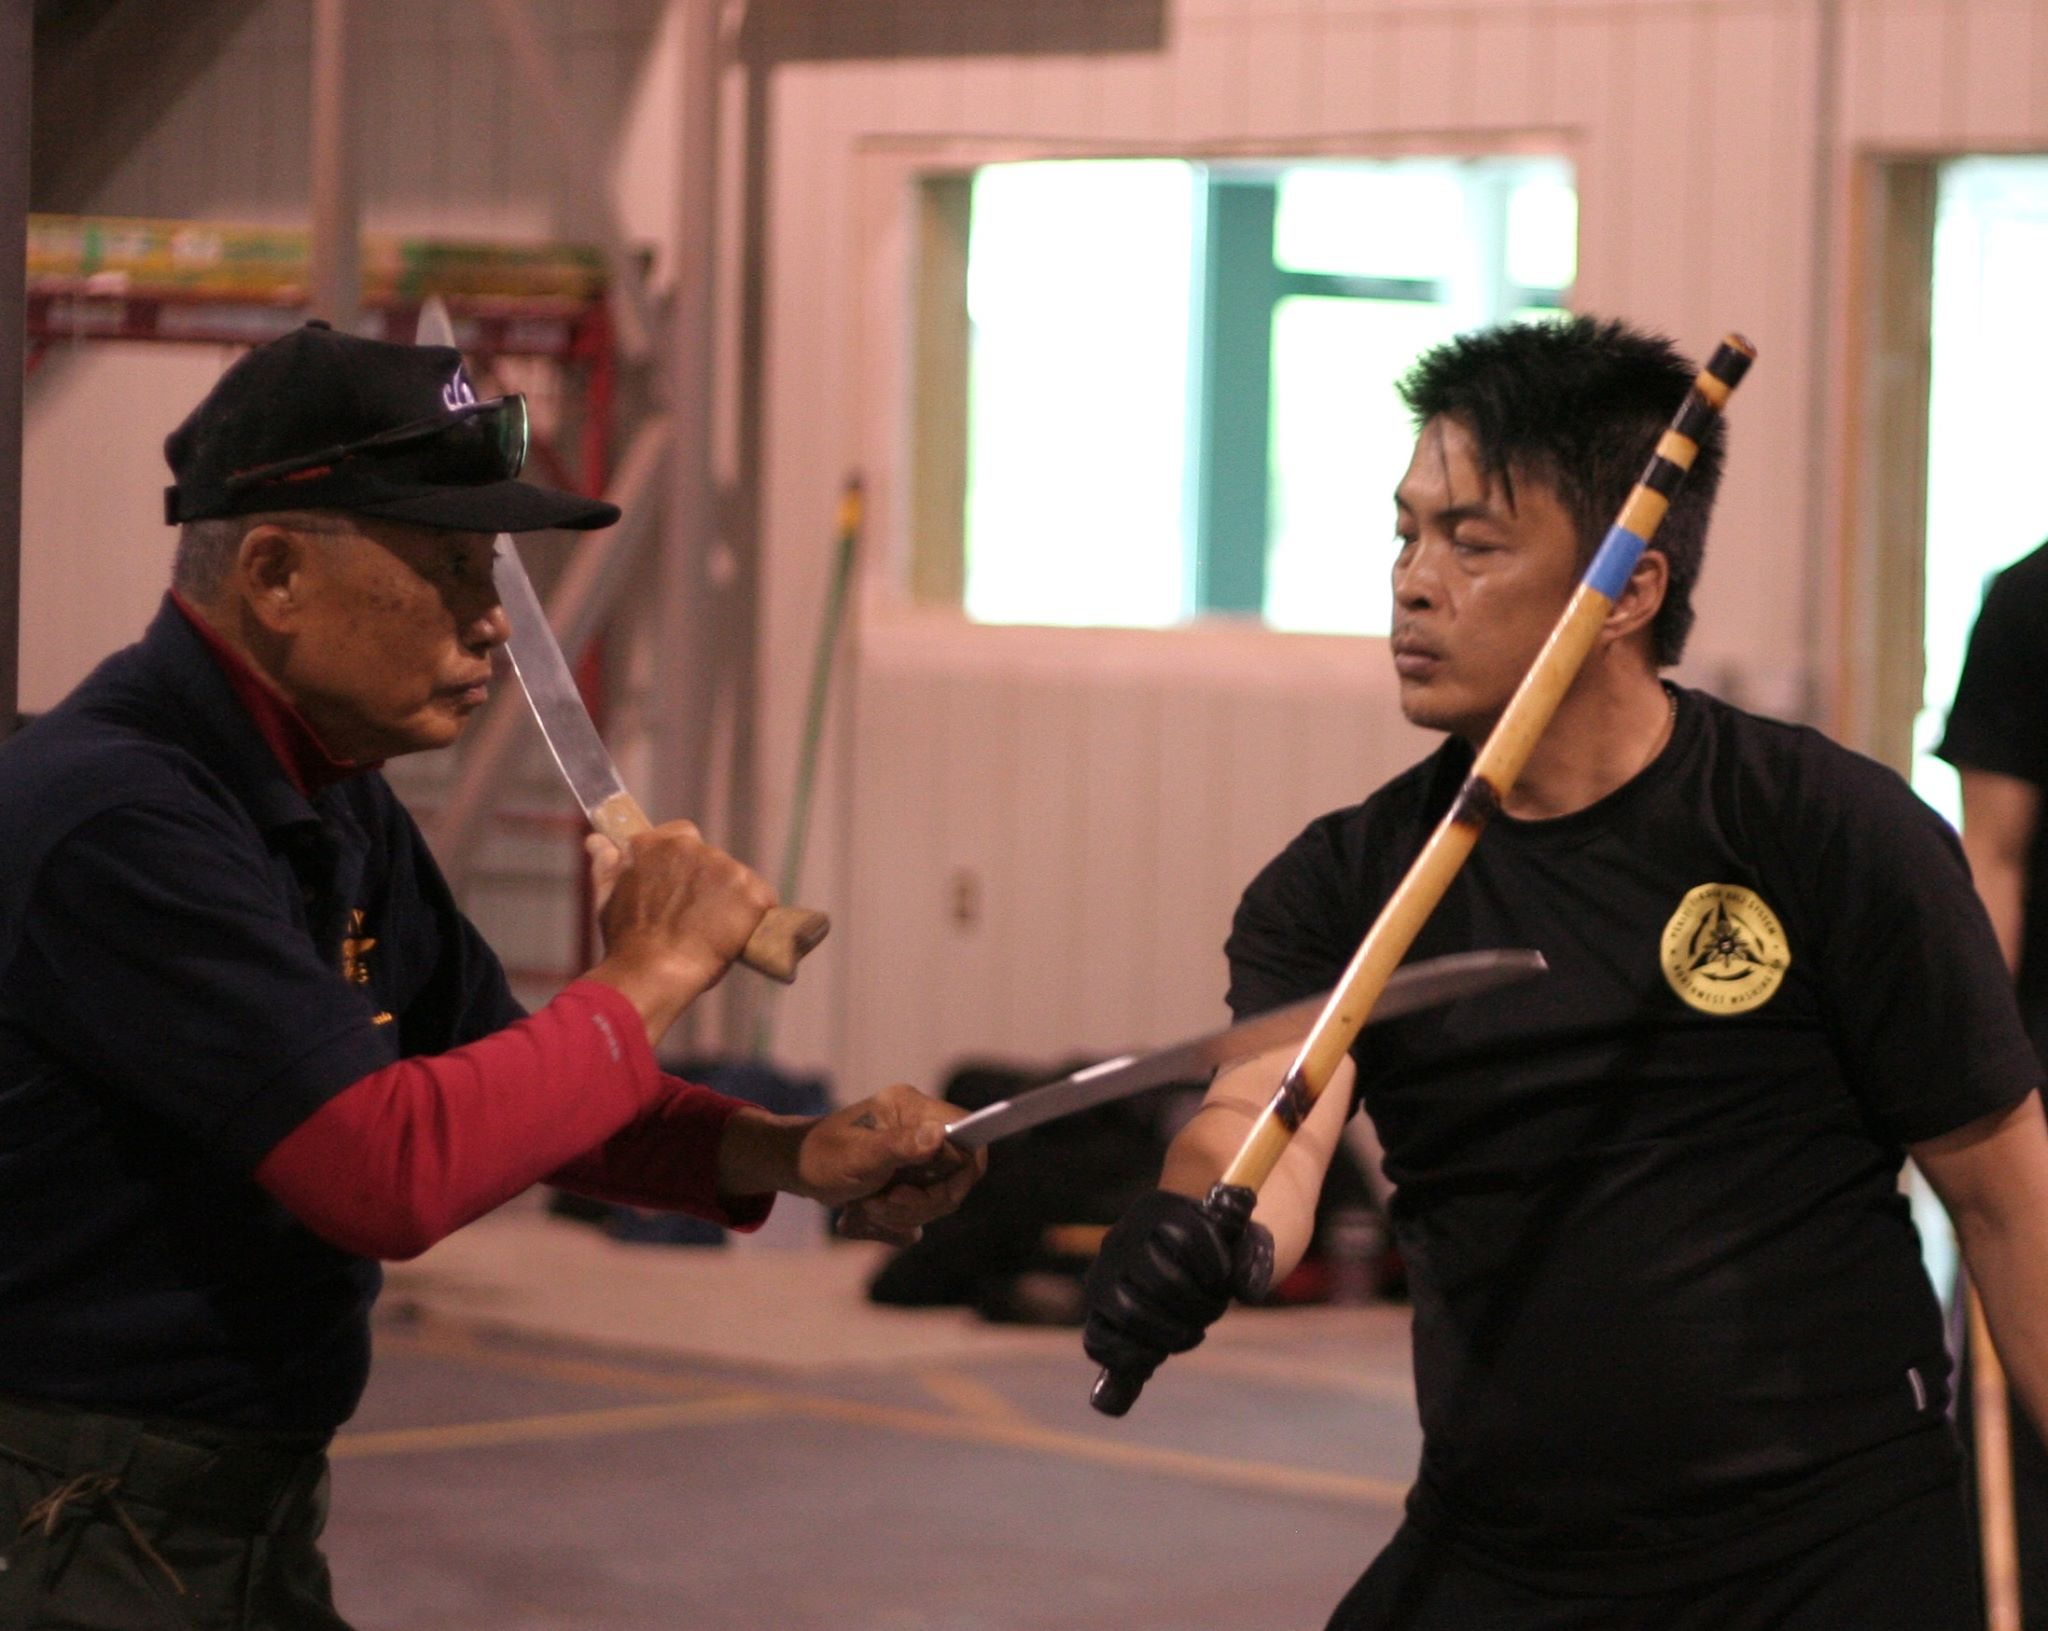 Art Samson - Pekiti Tirsia Kali InstructorMr. Art Samson has been training in the Filipino martial art of Pekiti Tirsia Kali since 2010 and has been awarded a Full Instructor rank. Mr. Samson has trained primarily under the head of the PTK System; Grandtuhon Leo T. Gaje and has had the opportunity to train under many of the system's senior instructors both here in the United States as well as the Philippines.Mr. Samson is a firm believer and advocate for the self-defense aspects of the PTK system, however what he enjoys most about the system is the challenges; be it getting that 200th repetition of the same attack pattern when your arm is dead tired or dealing with your mental reservations about facing someone in a stick fight that we learn about who we are.Outside of the training hall Mr. Samson can be found biking and spending time with his family and church community.Sign Up or request more information. Your first class is always FREE!